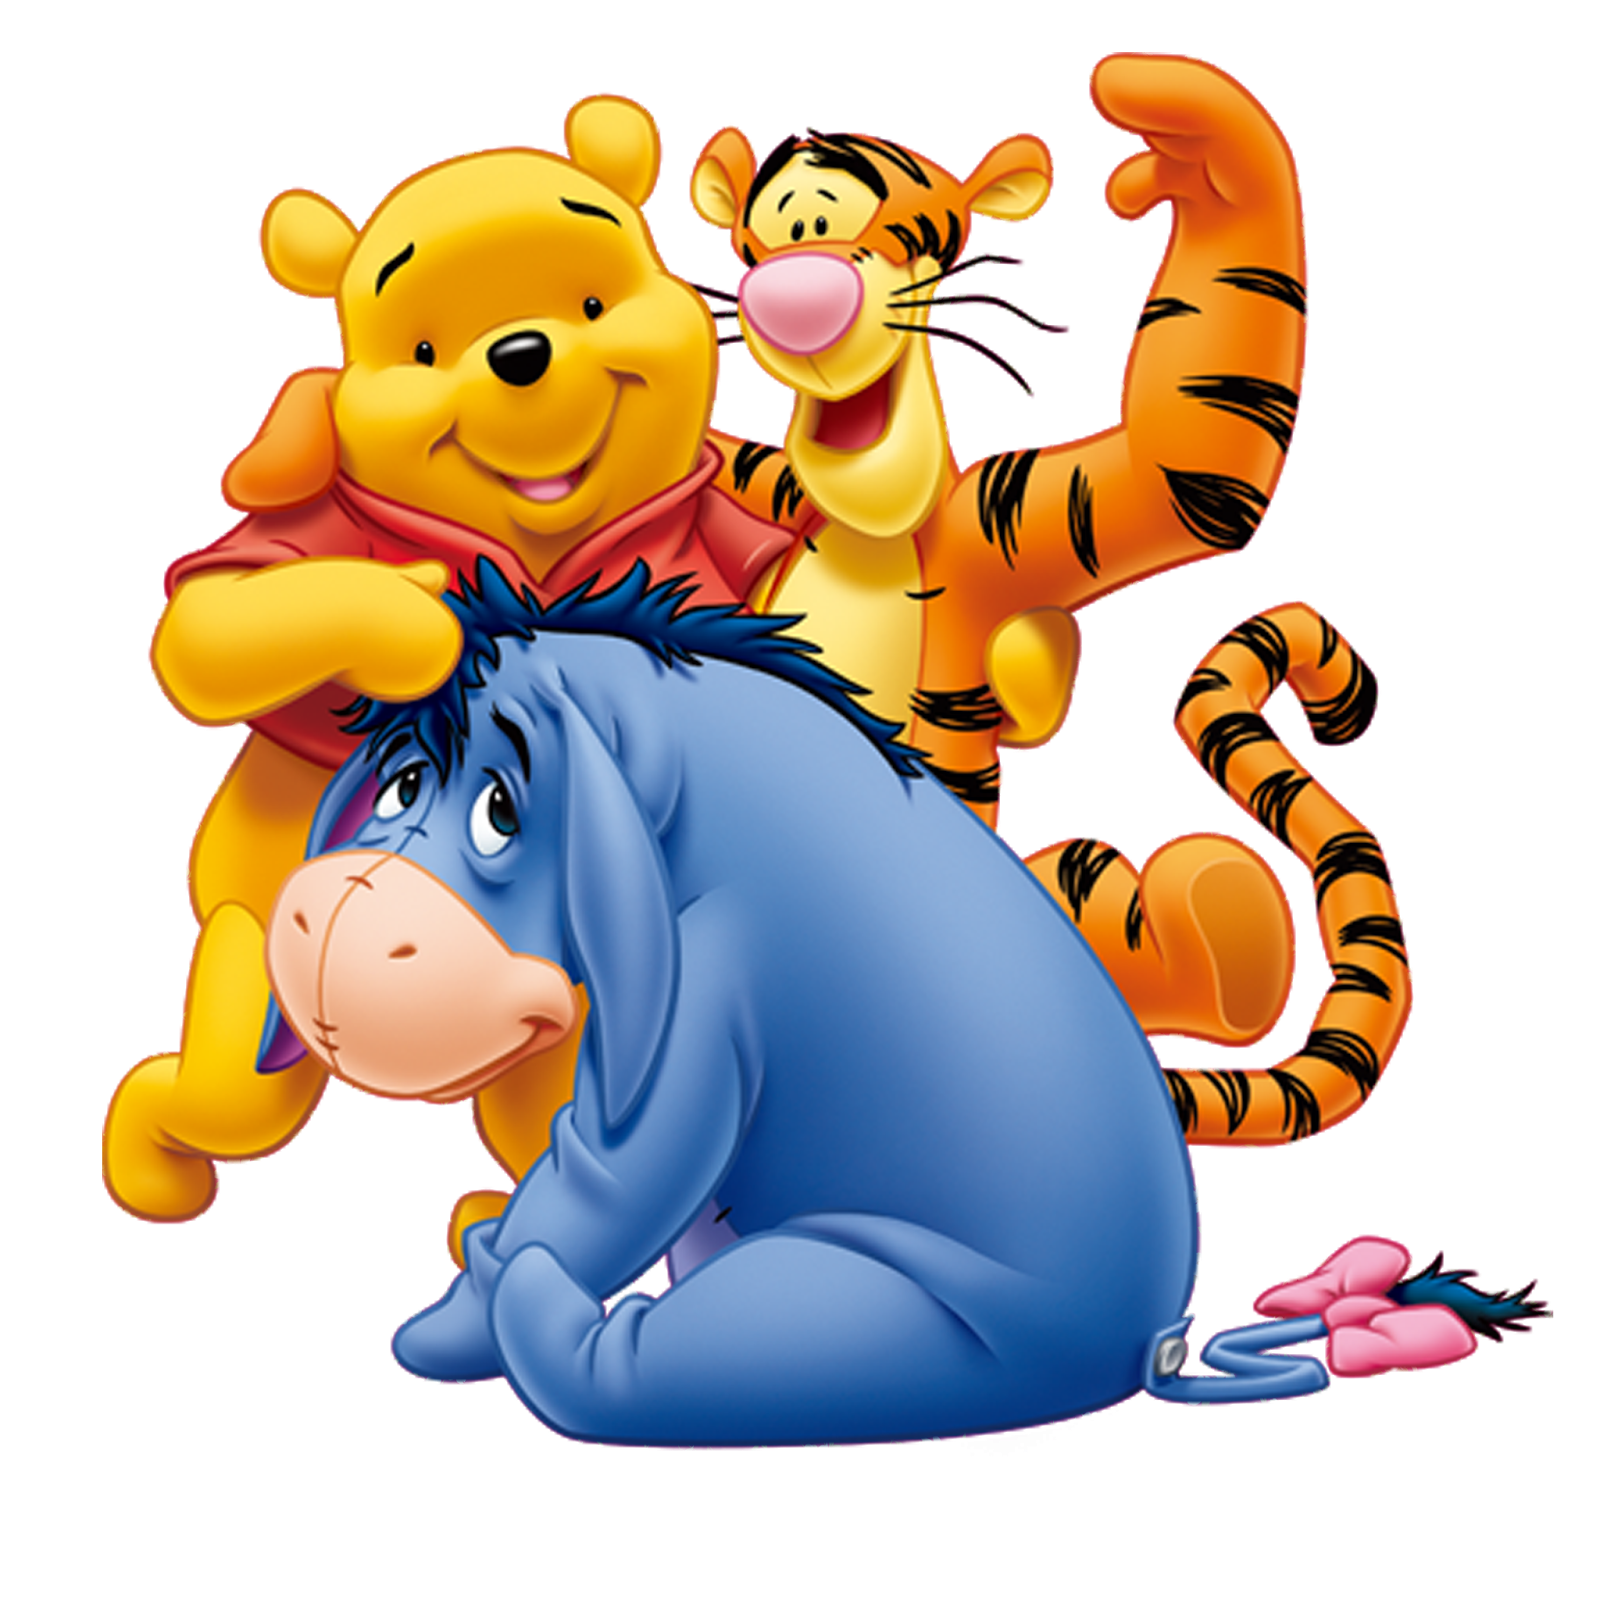 Winnie the pooh halloween clipart vector freeuse stock Winnie The Pooh Characters Clipart at GetDrawings.com   Free for ... vector freeuse stock